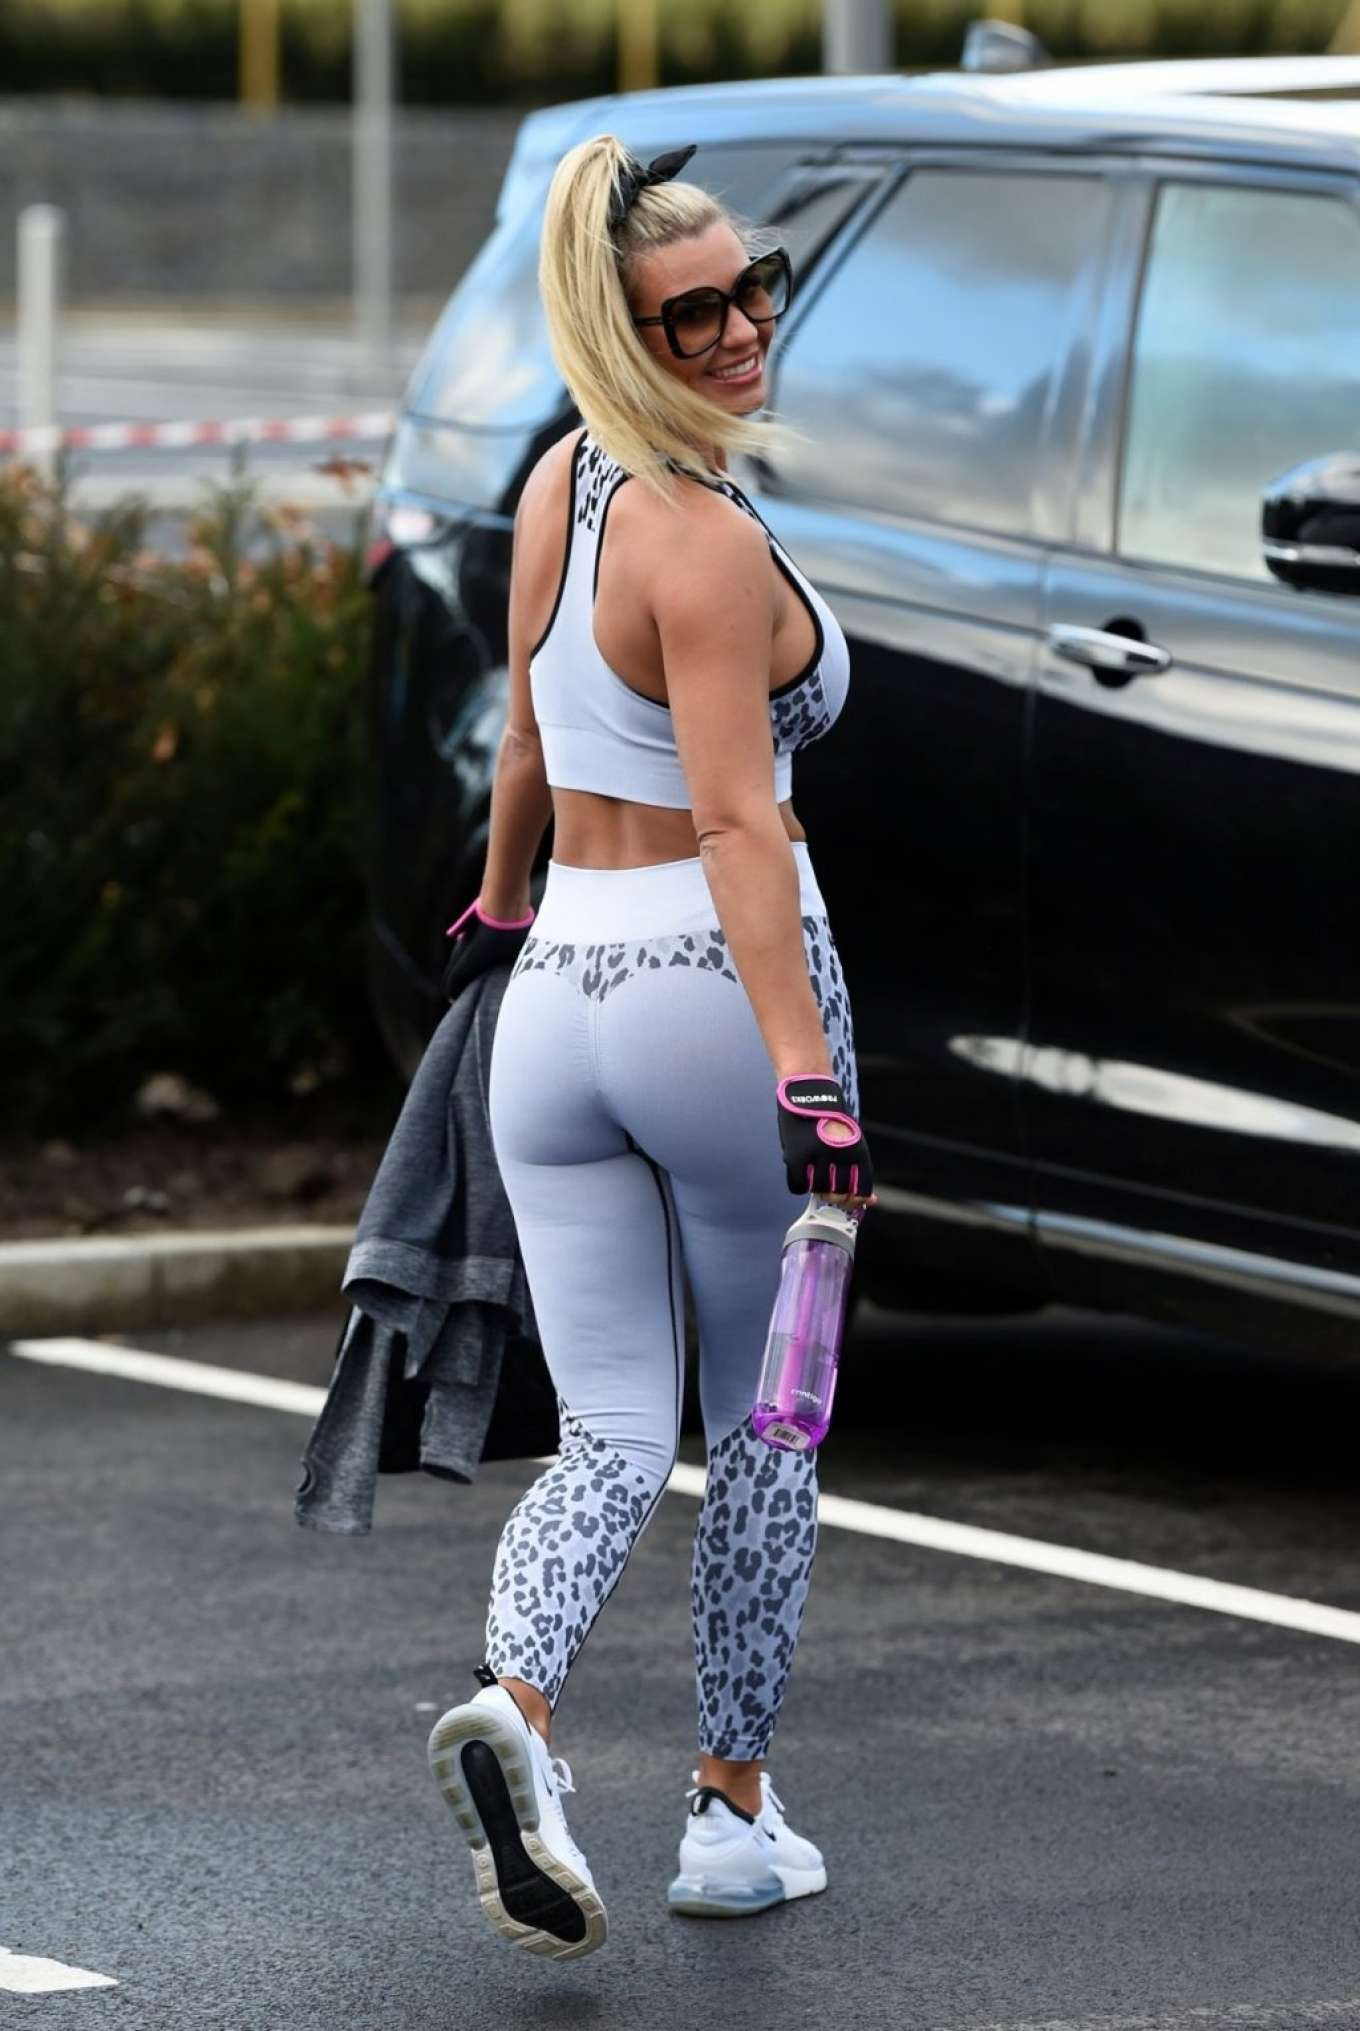 Christine McGuinness in Gym Outfit - Leaving the gym in Cheshire